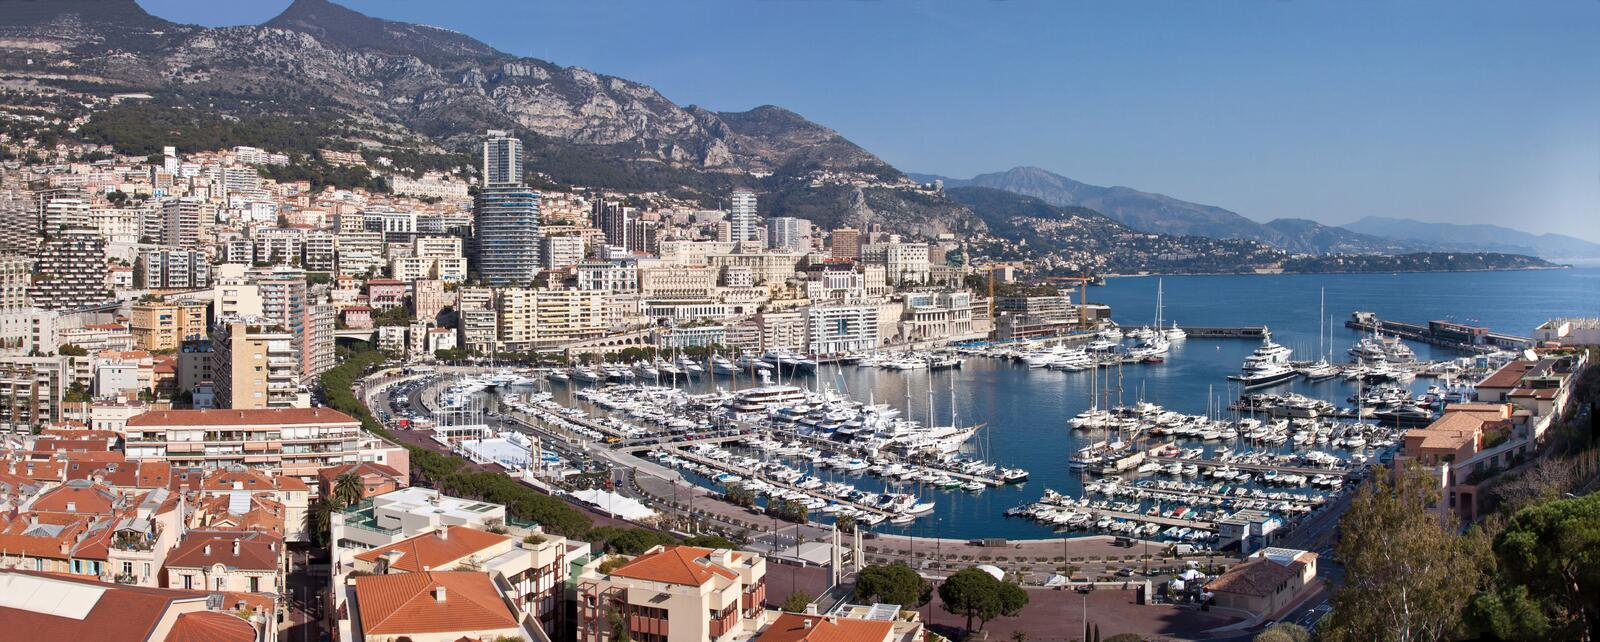 Panoramic view of Monte Carlo in Monaco with red roofs and white yachts. Azur coast. Symbol of luxury life stock photo